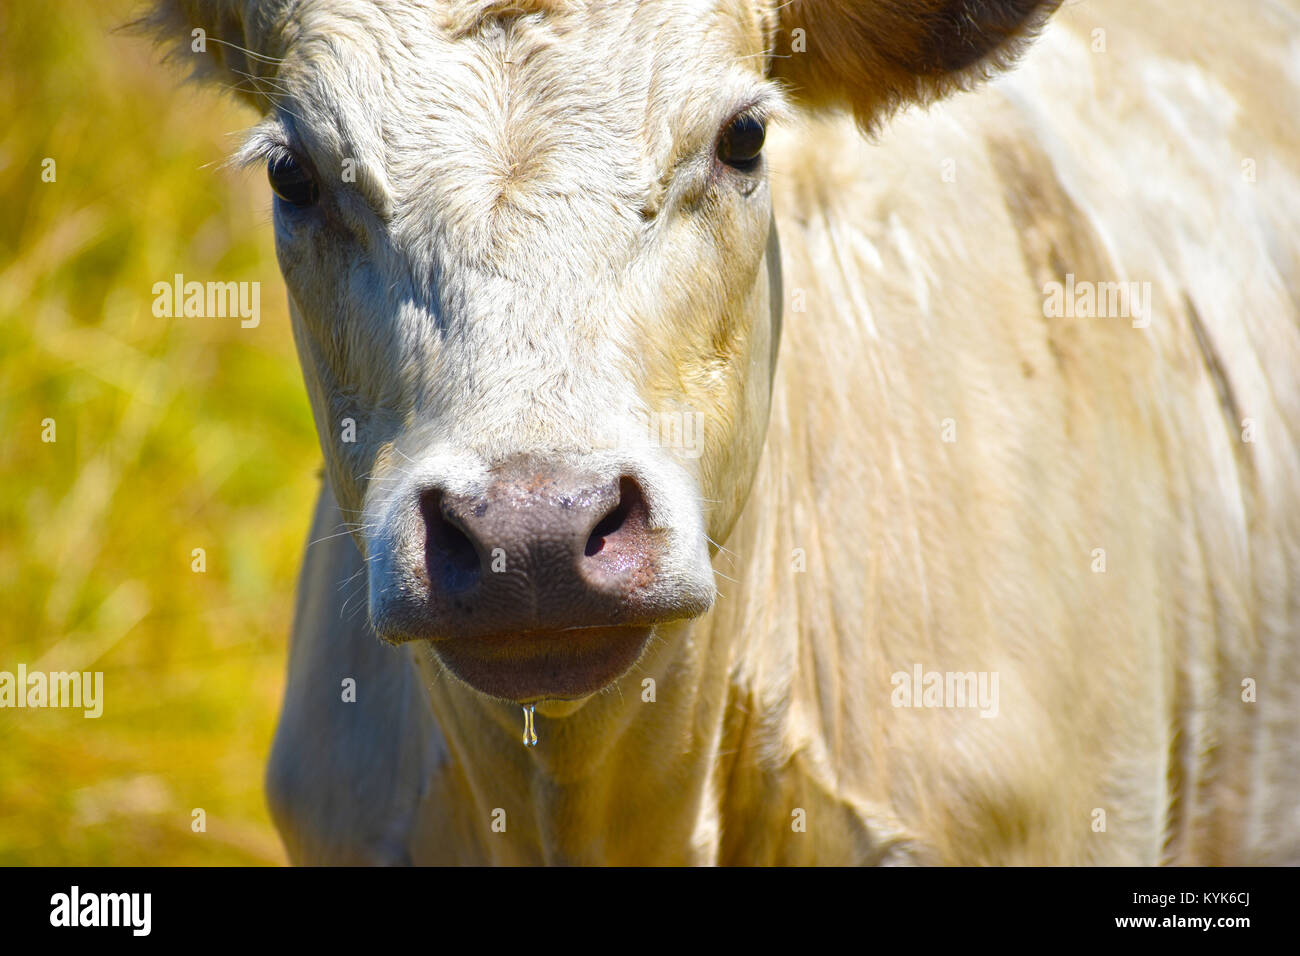 White bull cow close up with a drop of water hanging from its mouth.  He has just had a drink of water. - Stock Image